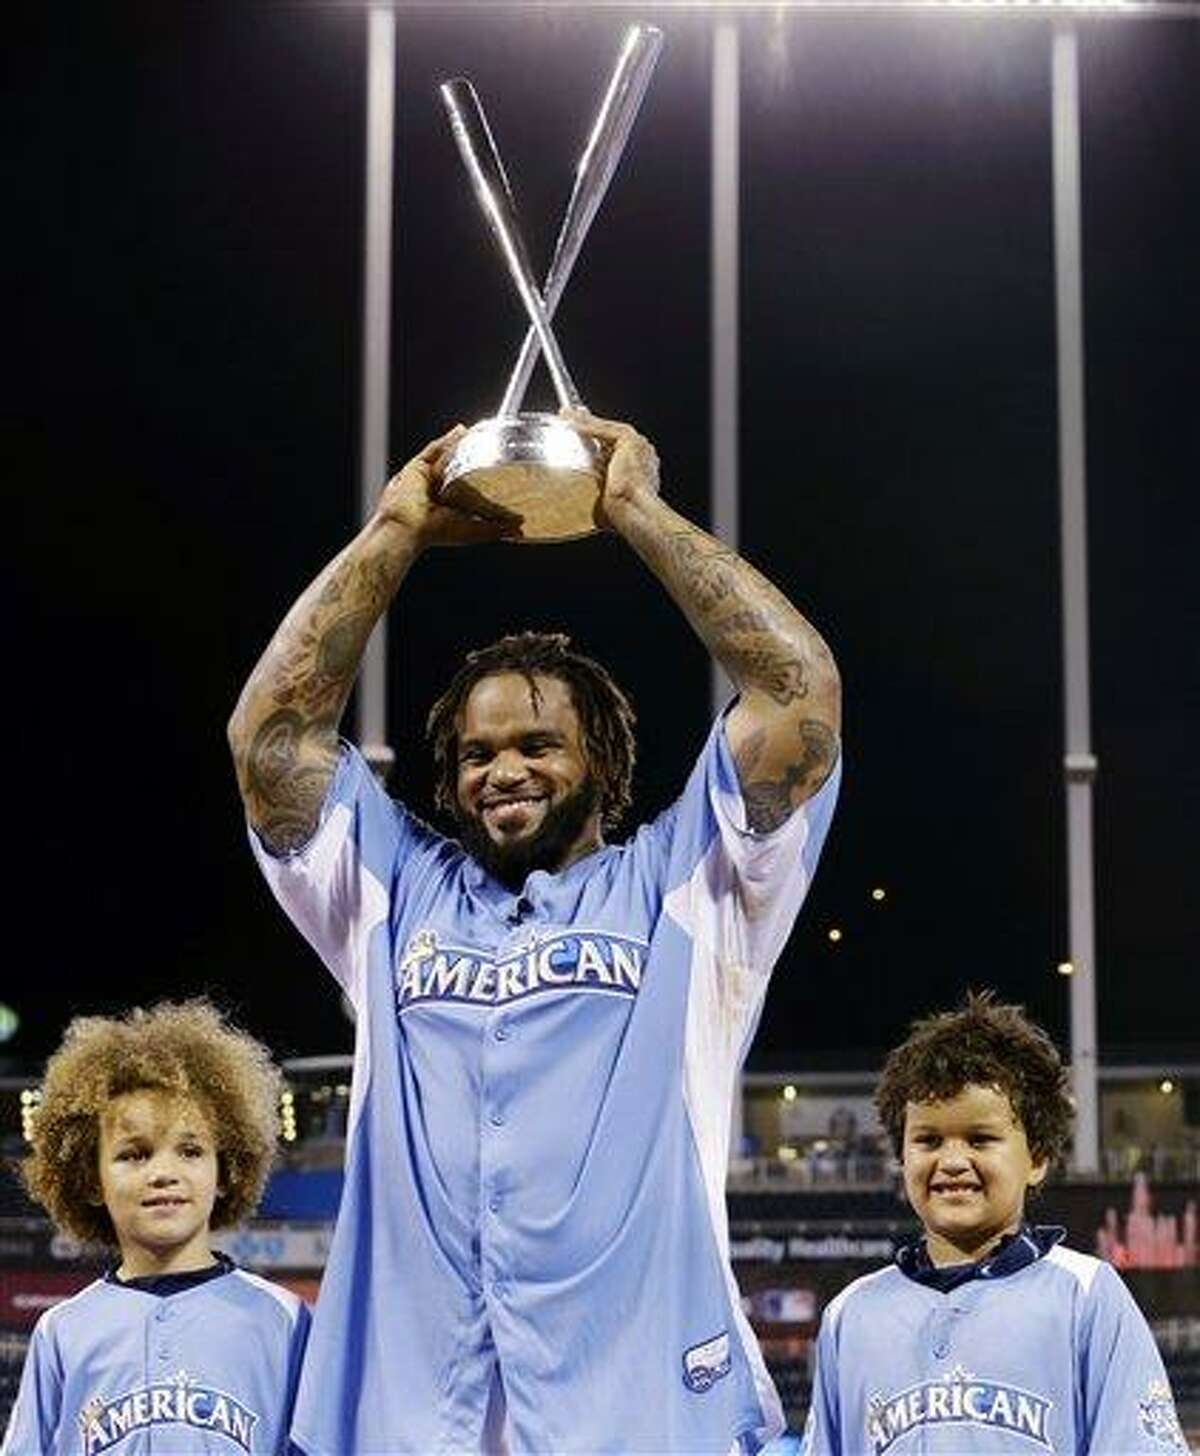 American League's Prince Fielder, of the Detroit Tigers, poses with his children Jaden, left, and Haven after receiving the MLB All-Star baseball Home Run Derby trophy, Monday, July 9, 2012, in Kansas City, Mo. (AP Photo/Charlie Riedel)